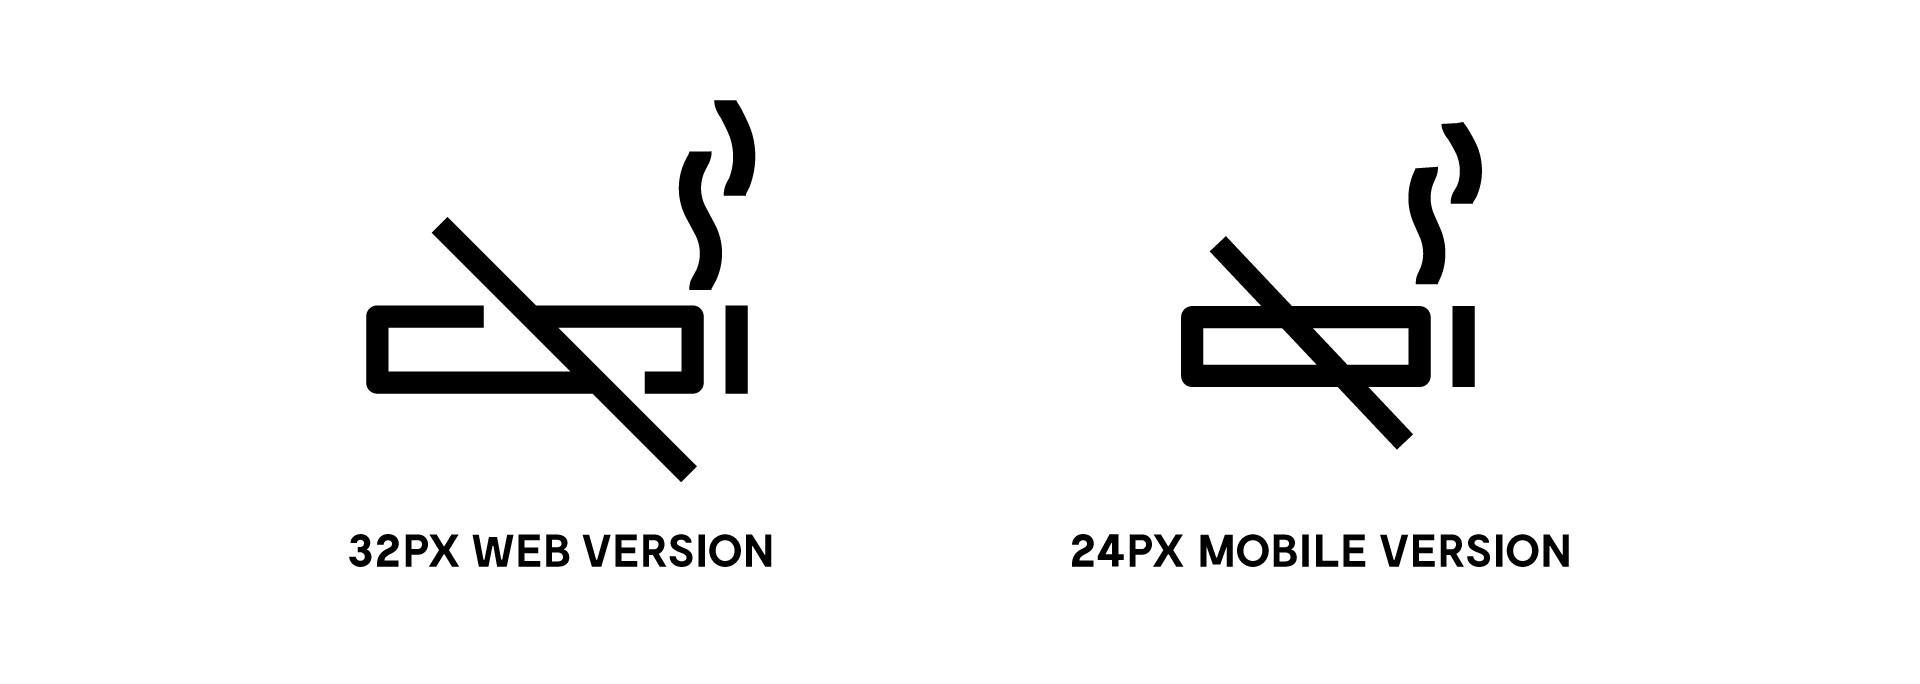 Reducing complexity and tightening up shapes in a mobile-only icon